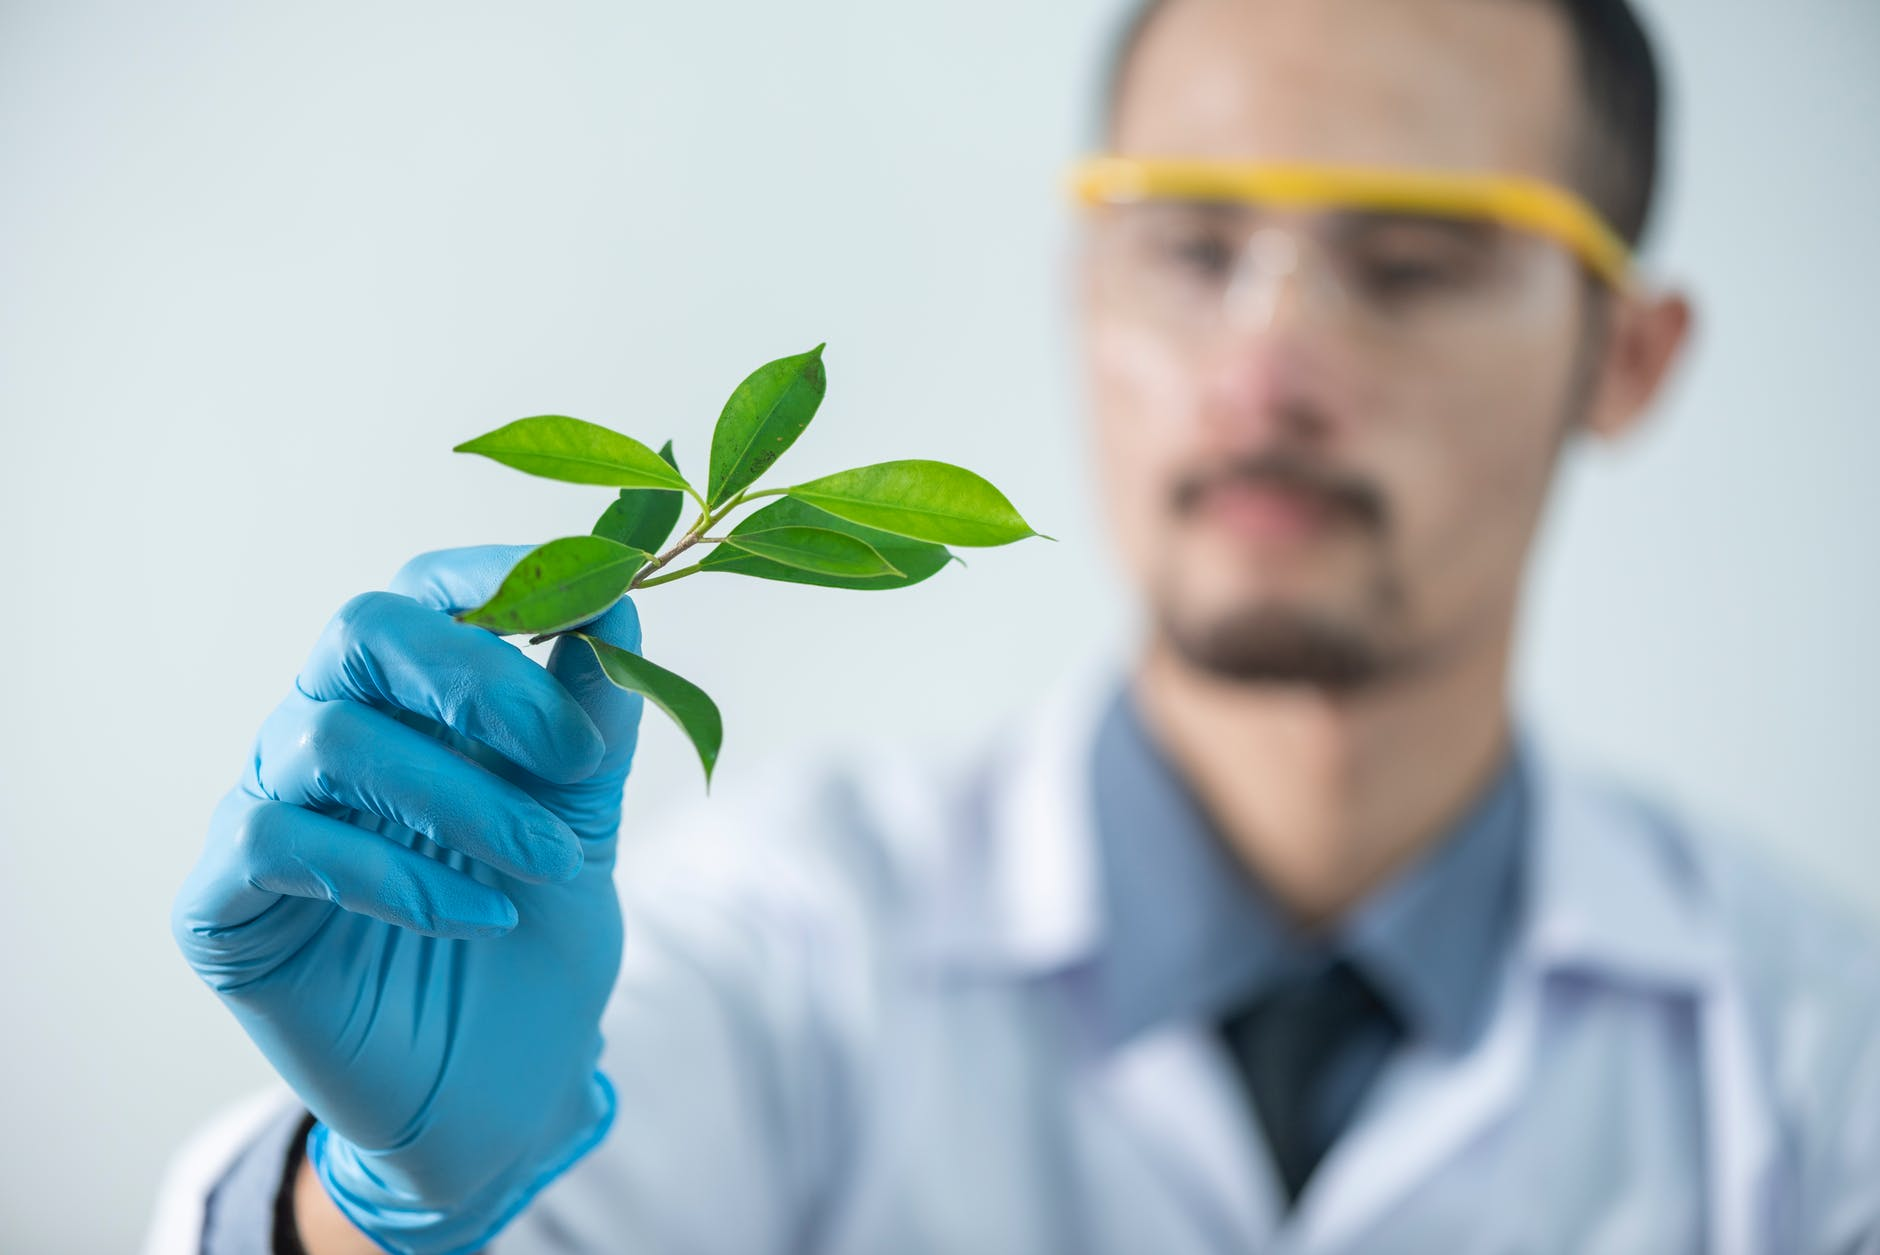 Male scientist examining plant